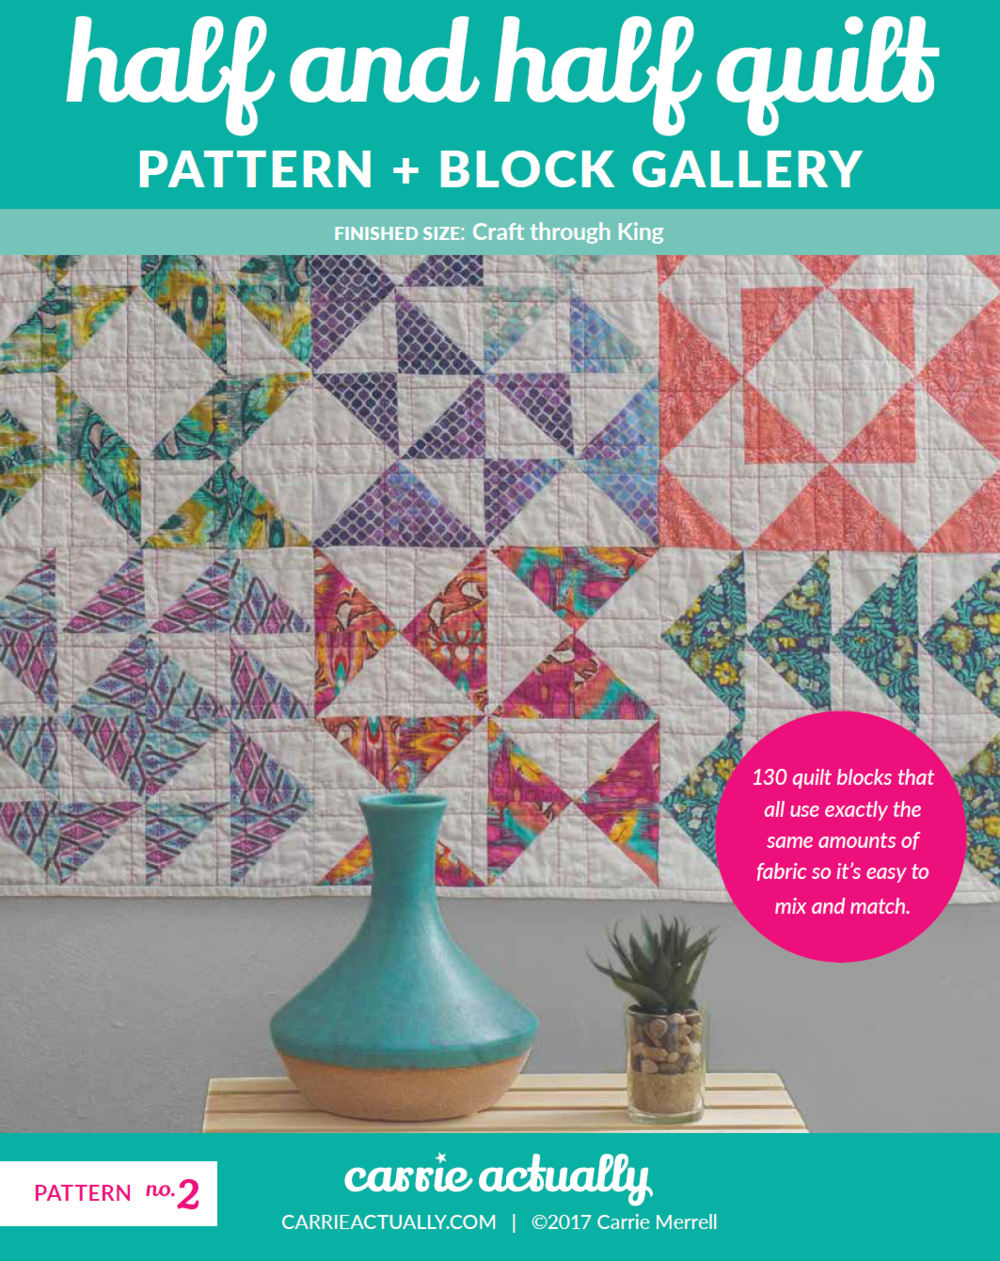 Carrie Actually - Half and Half Quilt by Carrie Merrell.png